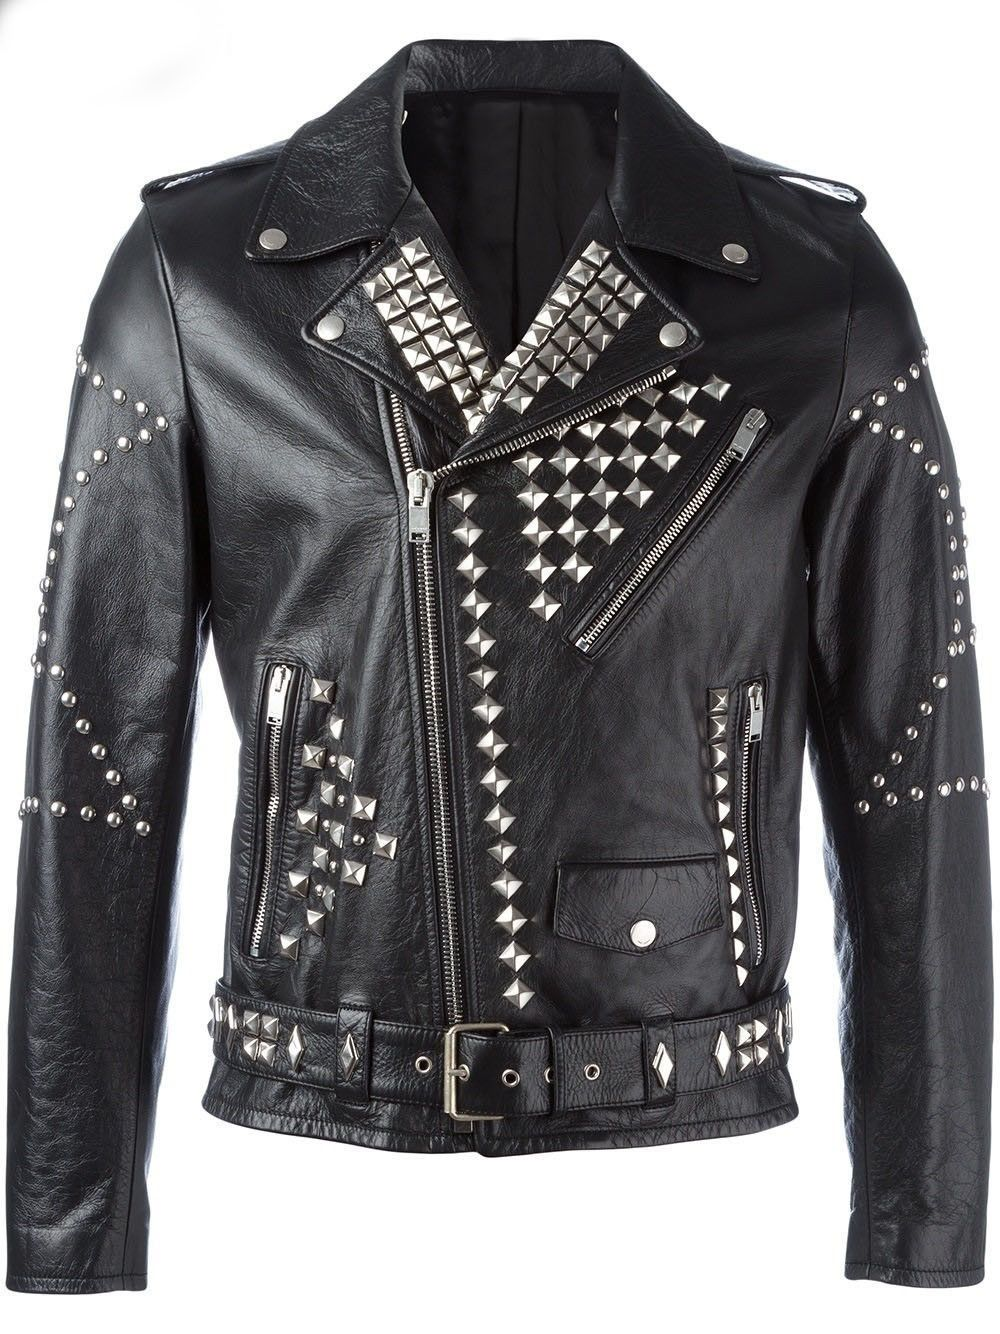 Men Classic Sliver Studded Leather Motorcycle Jacket, Biker Leather Jacket is part of Clothes Mens Classic - Men classic sliver studded leather motorcycle jacket, biker black leather jacket